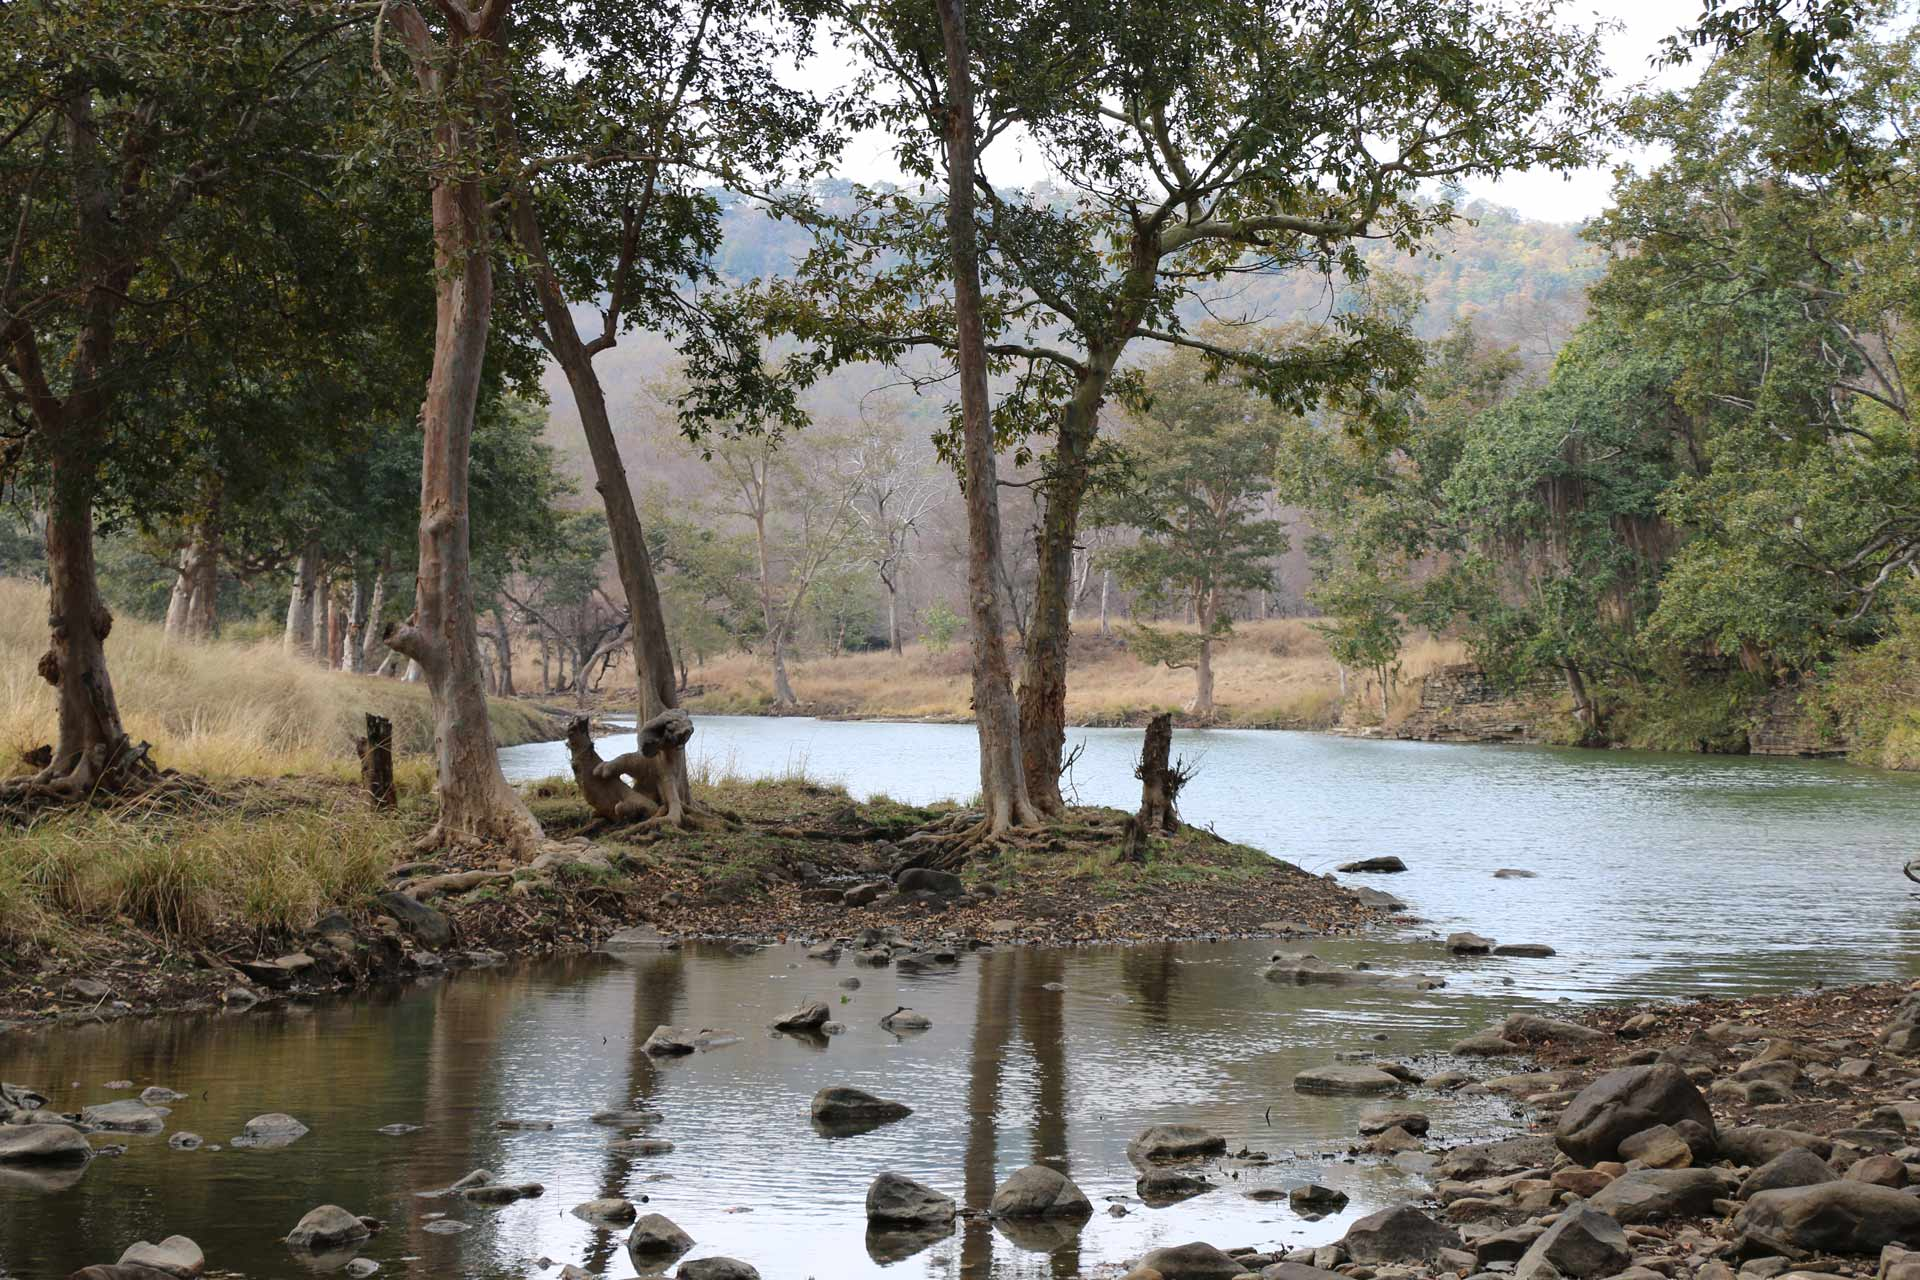 Landscape view Central Tala zone of Bandhavgarh National Park India. This biodiverse park is full of tropical forest.